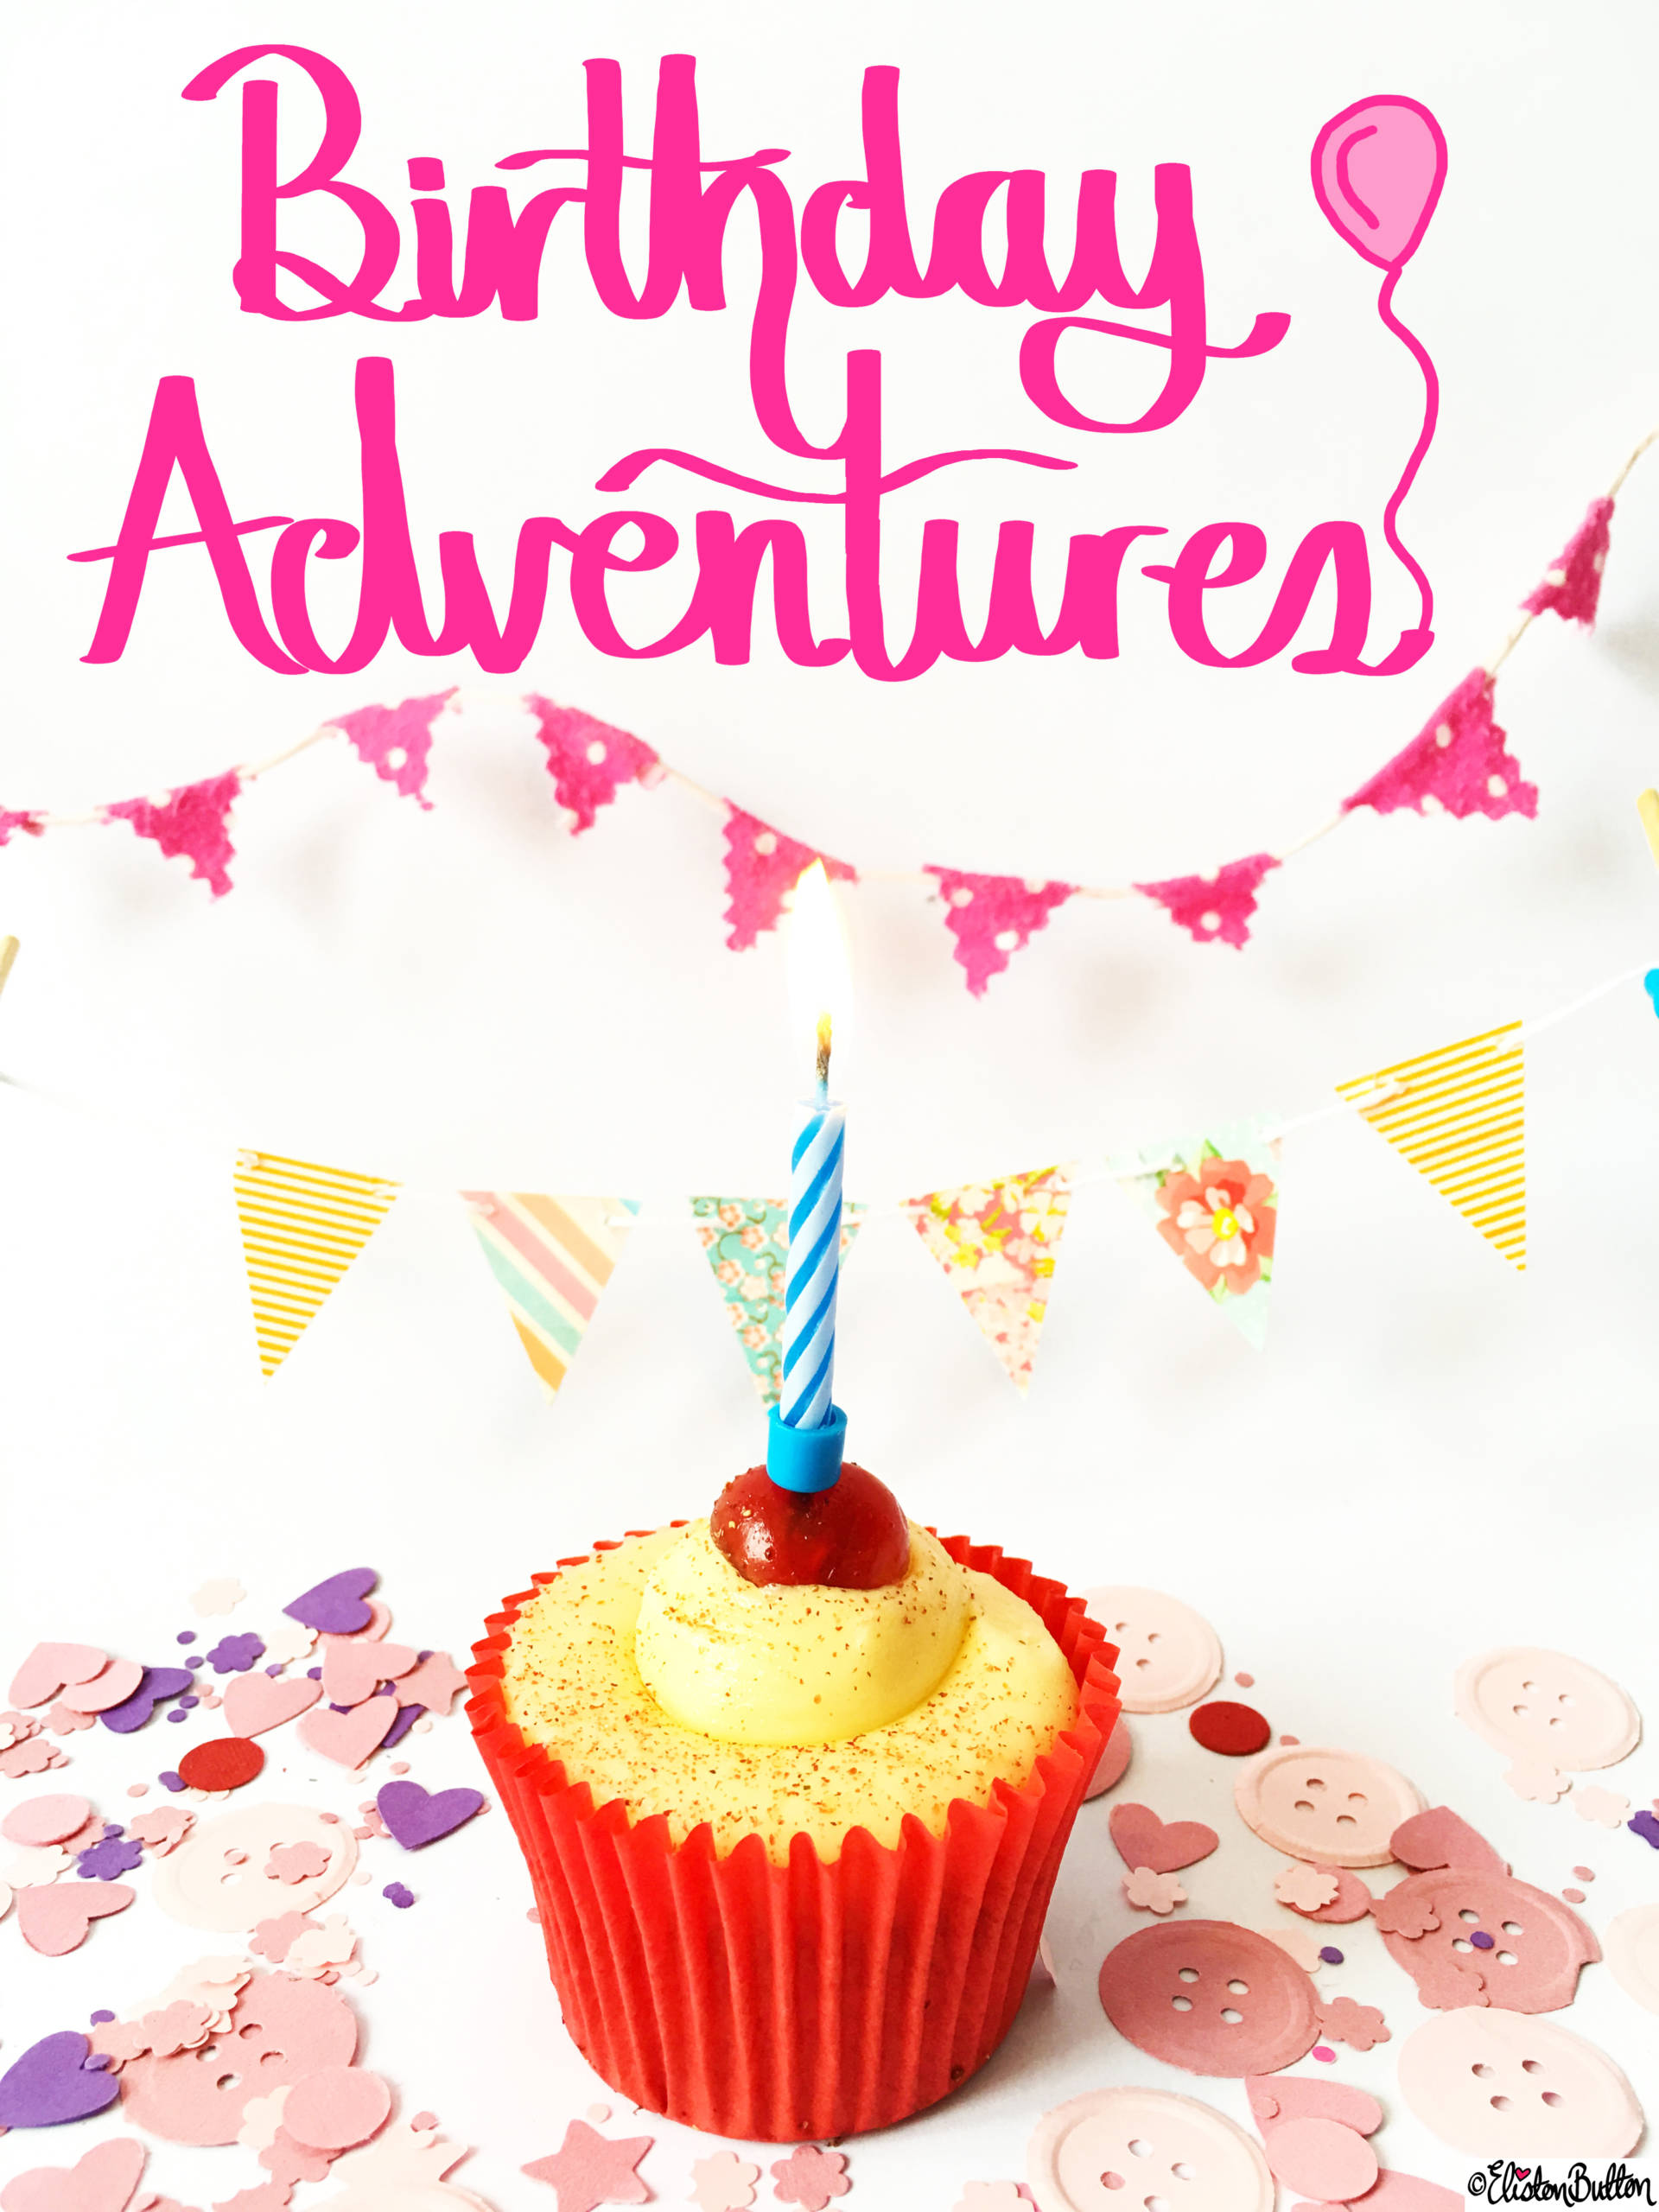 Birthday Adventures by Eliston Button - Birthday Adventures at www.elistonbutton.com - Eliston Button - That Crafty Kid – Art, Design, Craft & Adventure.